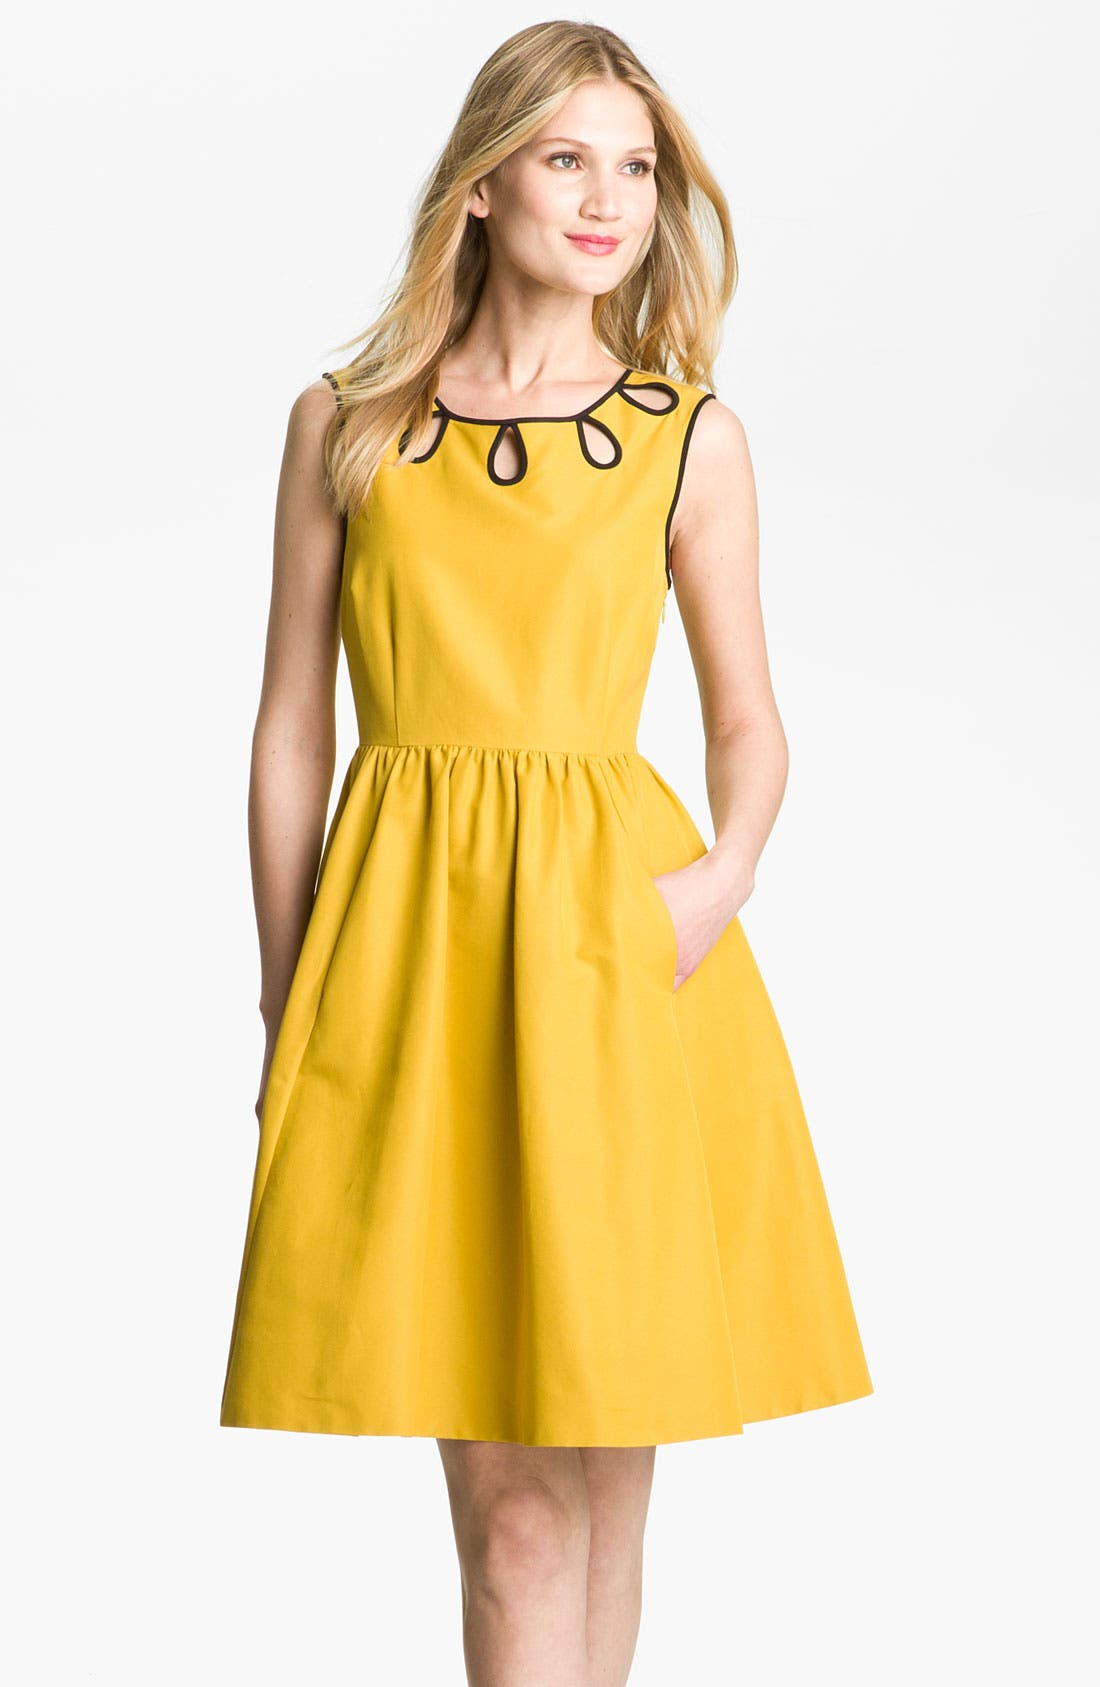 Alternate Image 1 Selected - kate spade new york 'rainey' dress